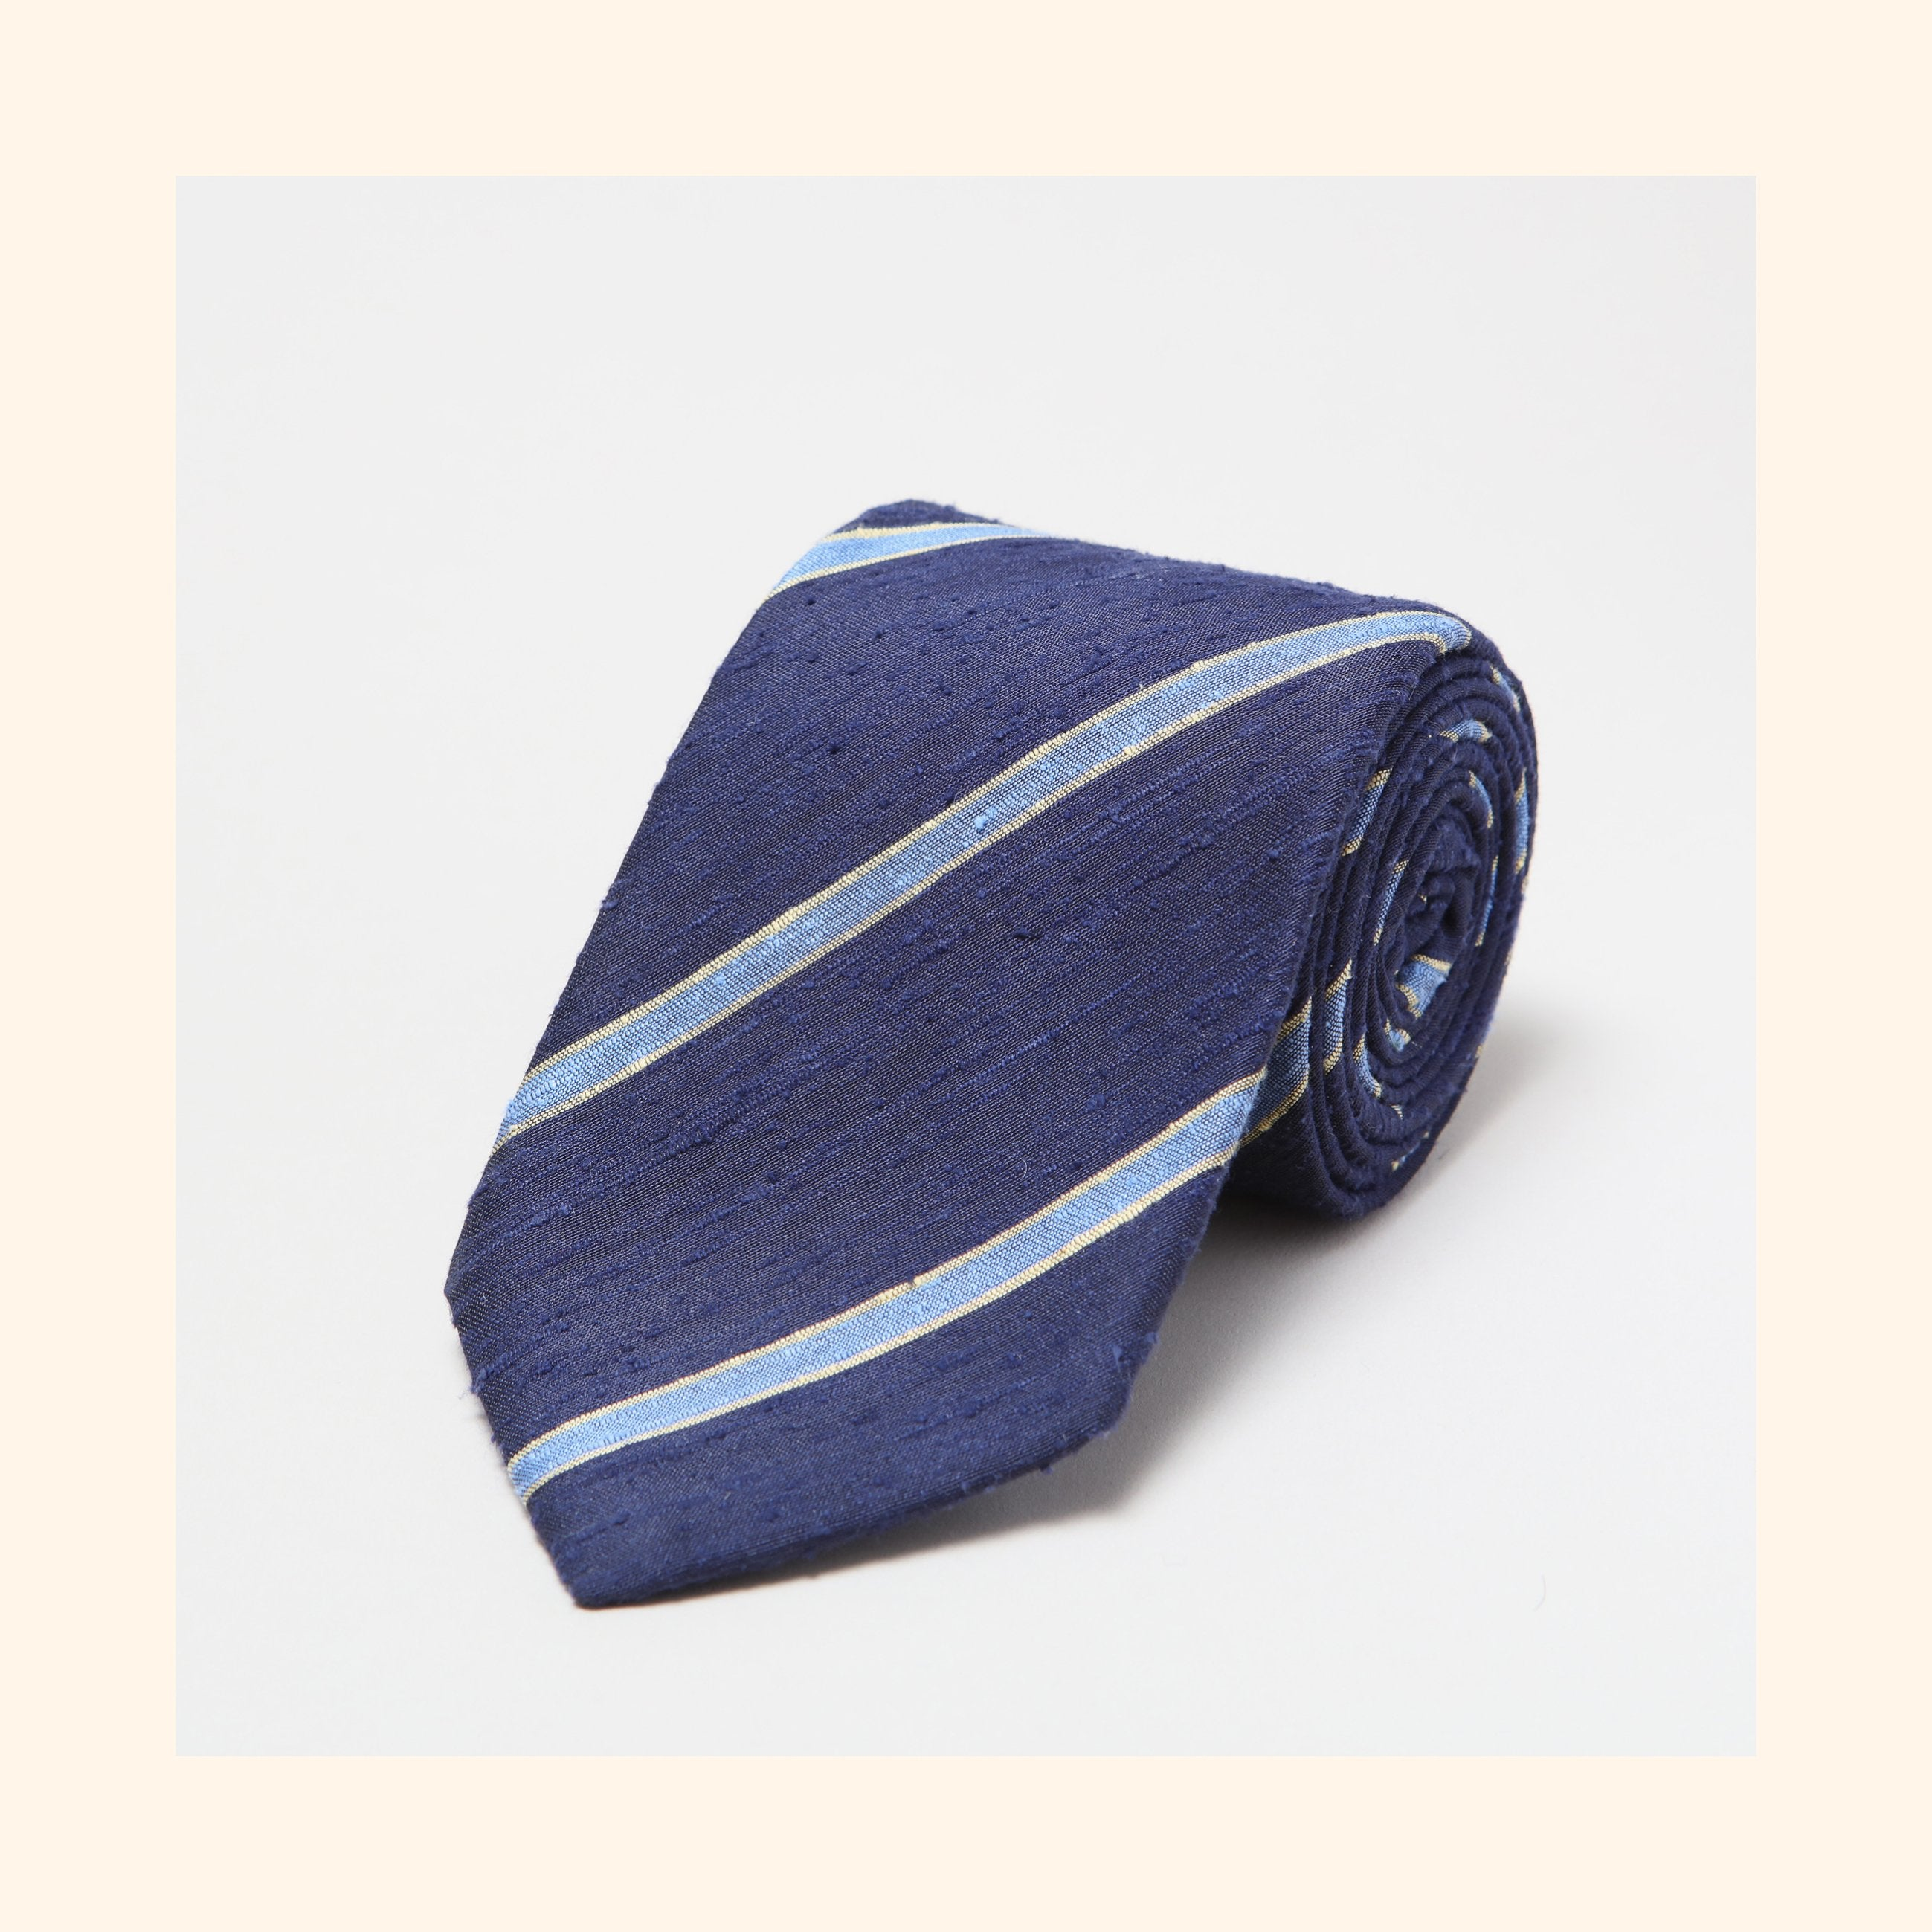 № 064 - Navy/Sky Blue Bordered Stripe Shantung Silk Tie